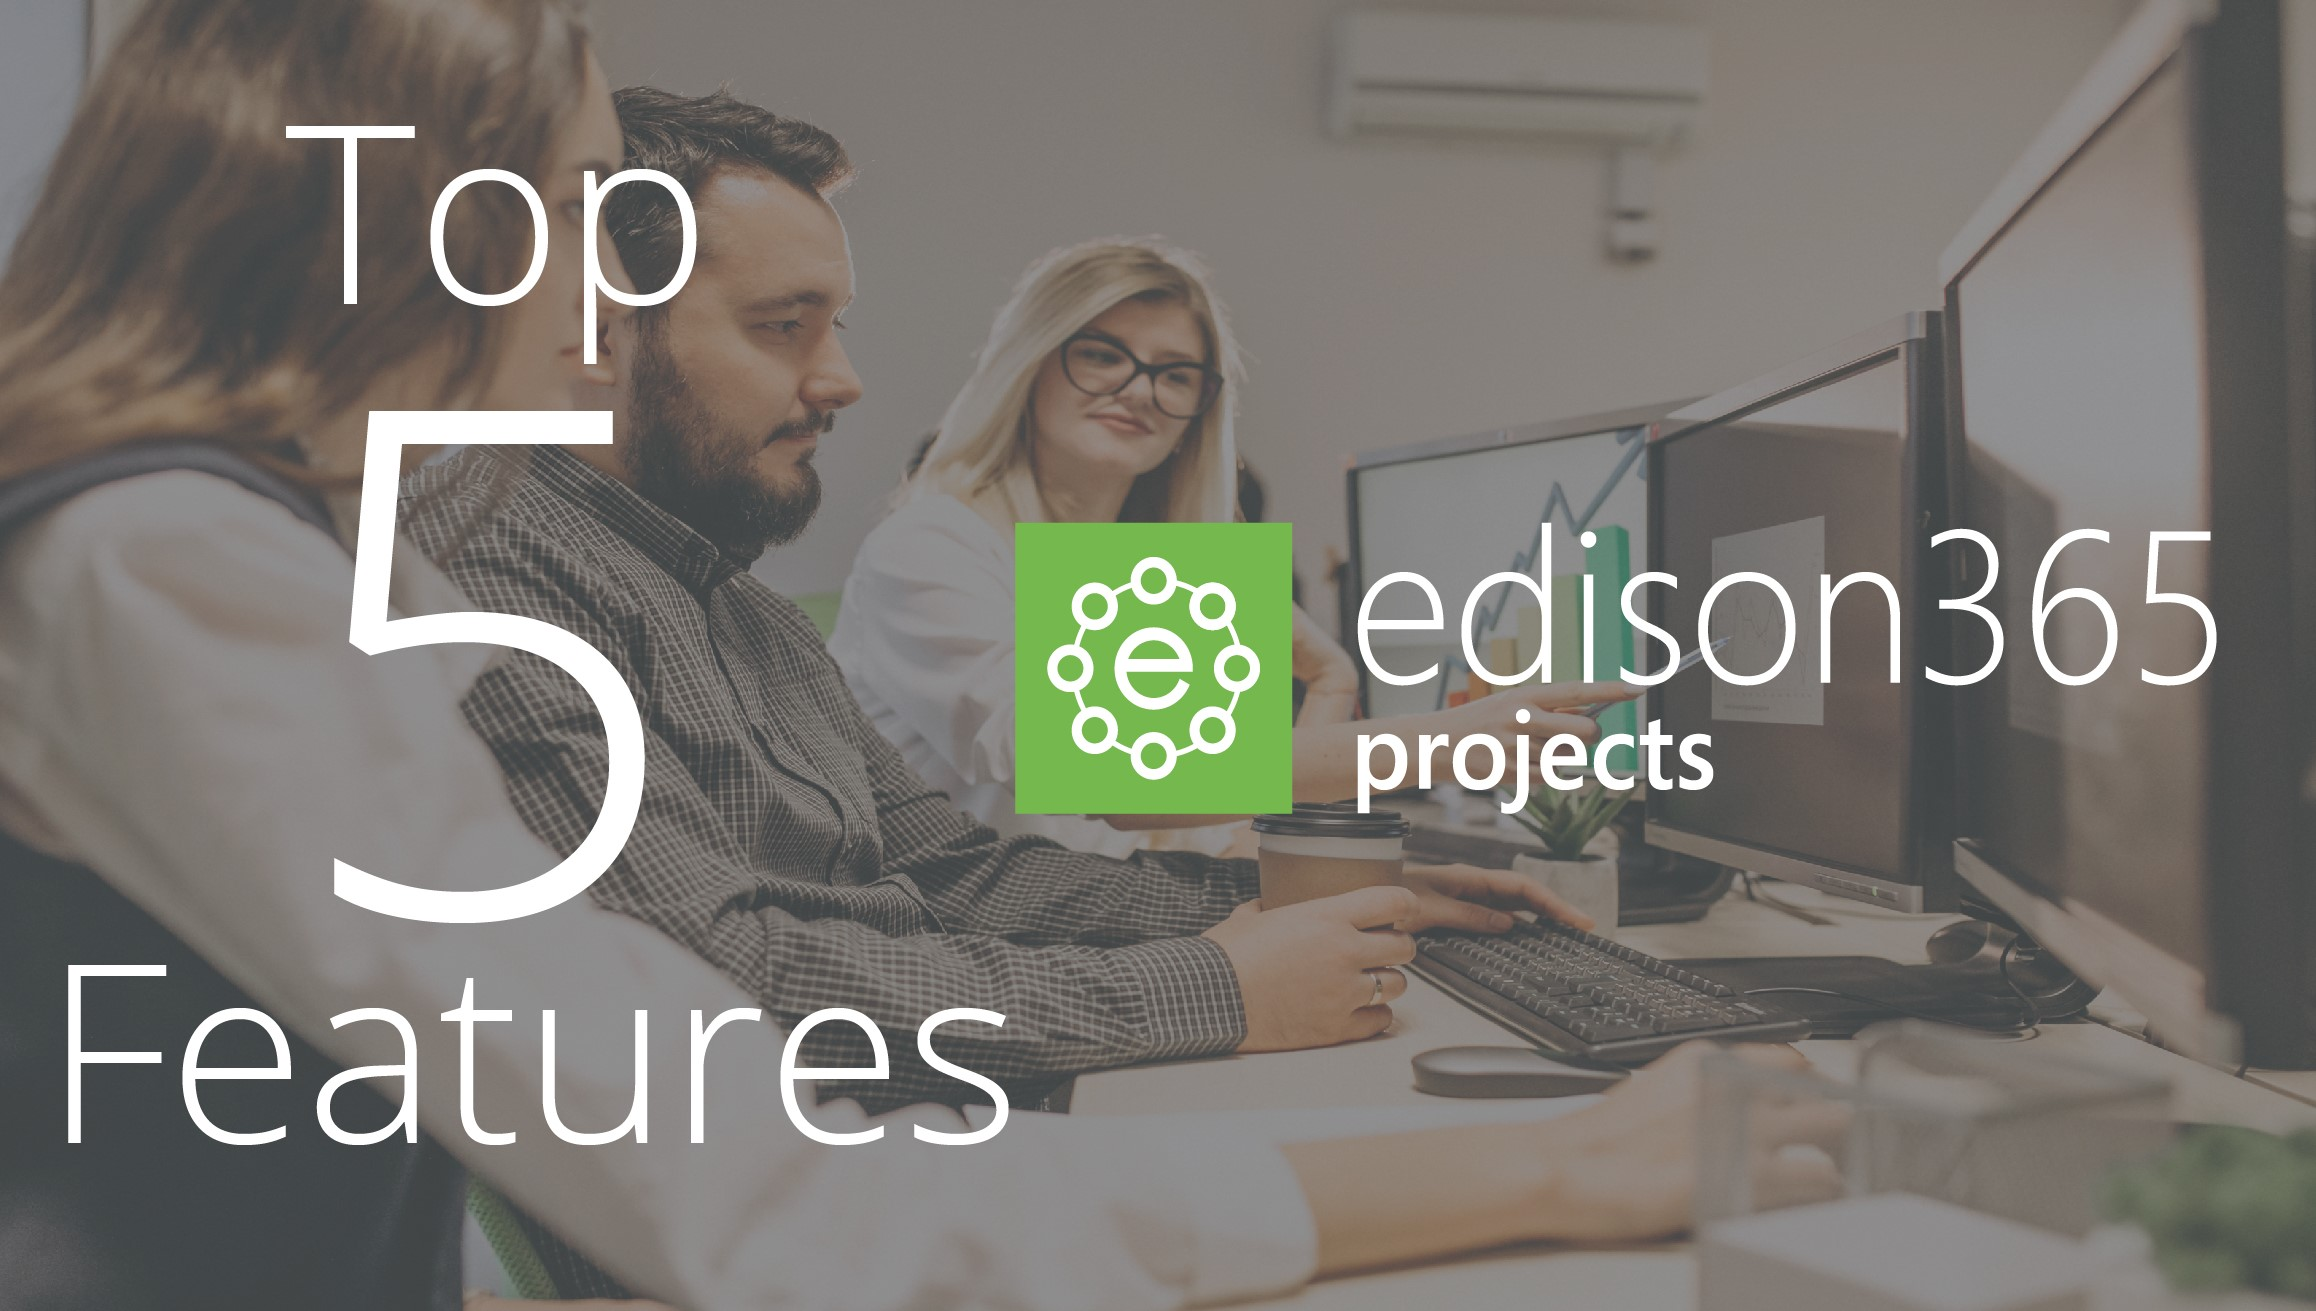 Top 5 features to edison365projects software